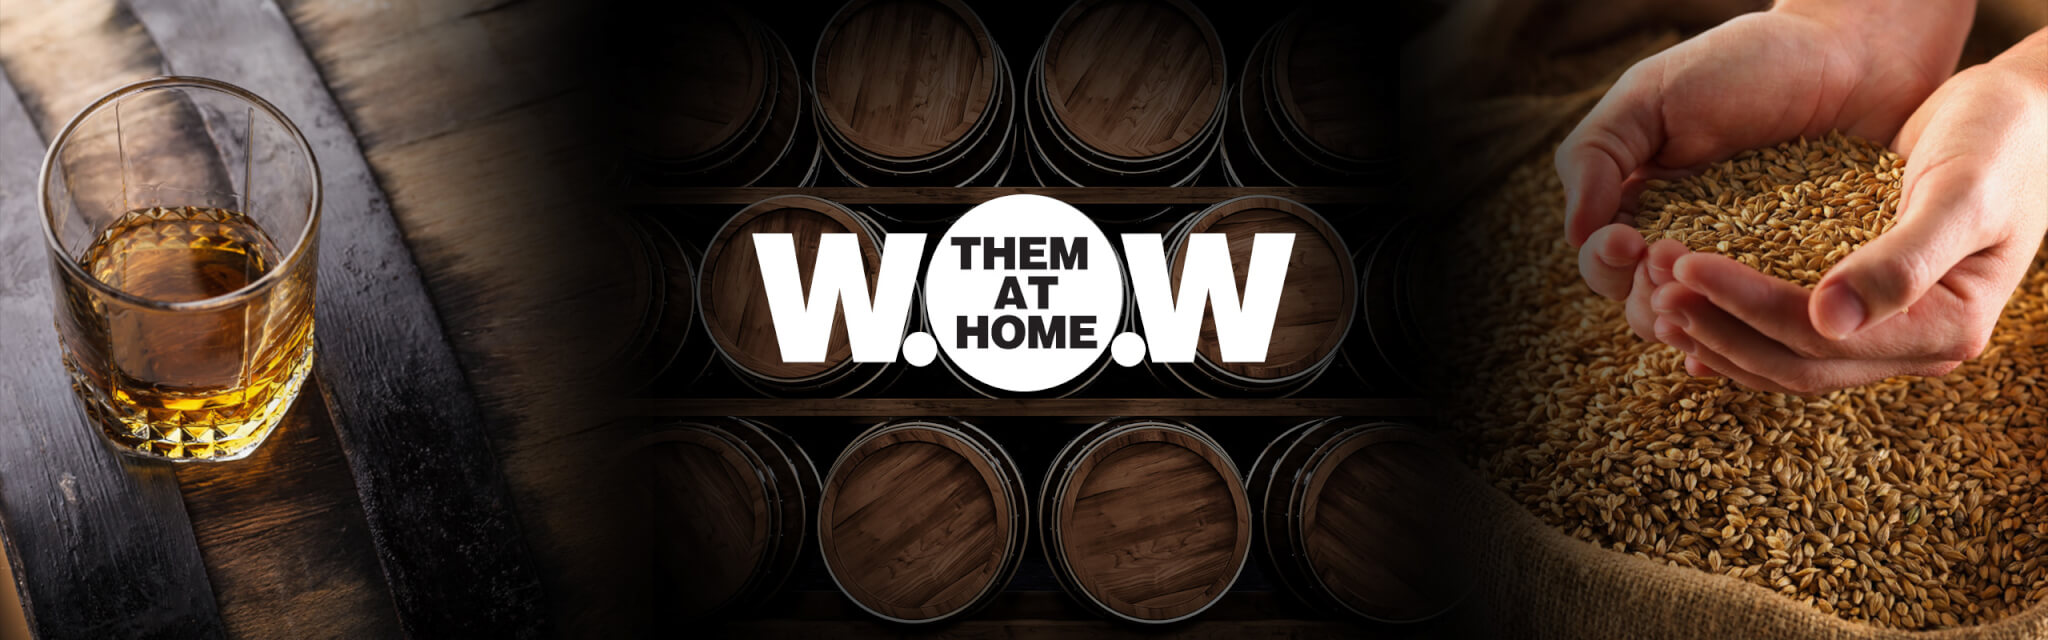 WOW THEM AT HOME - JULY 22